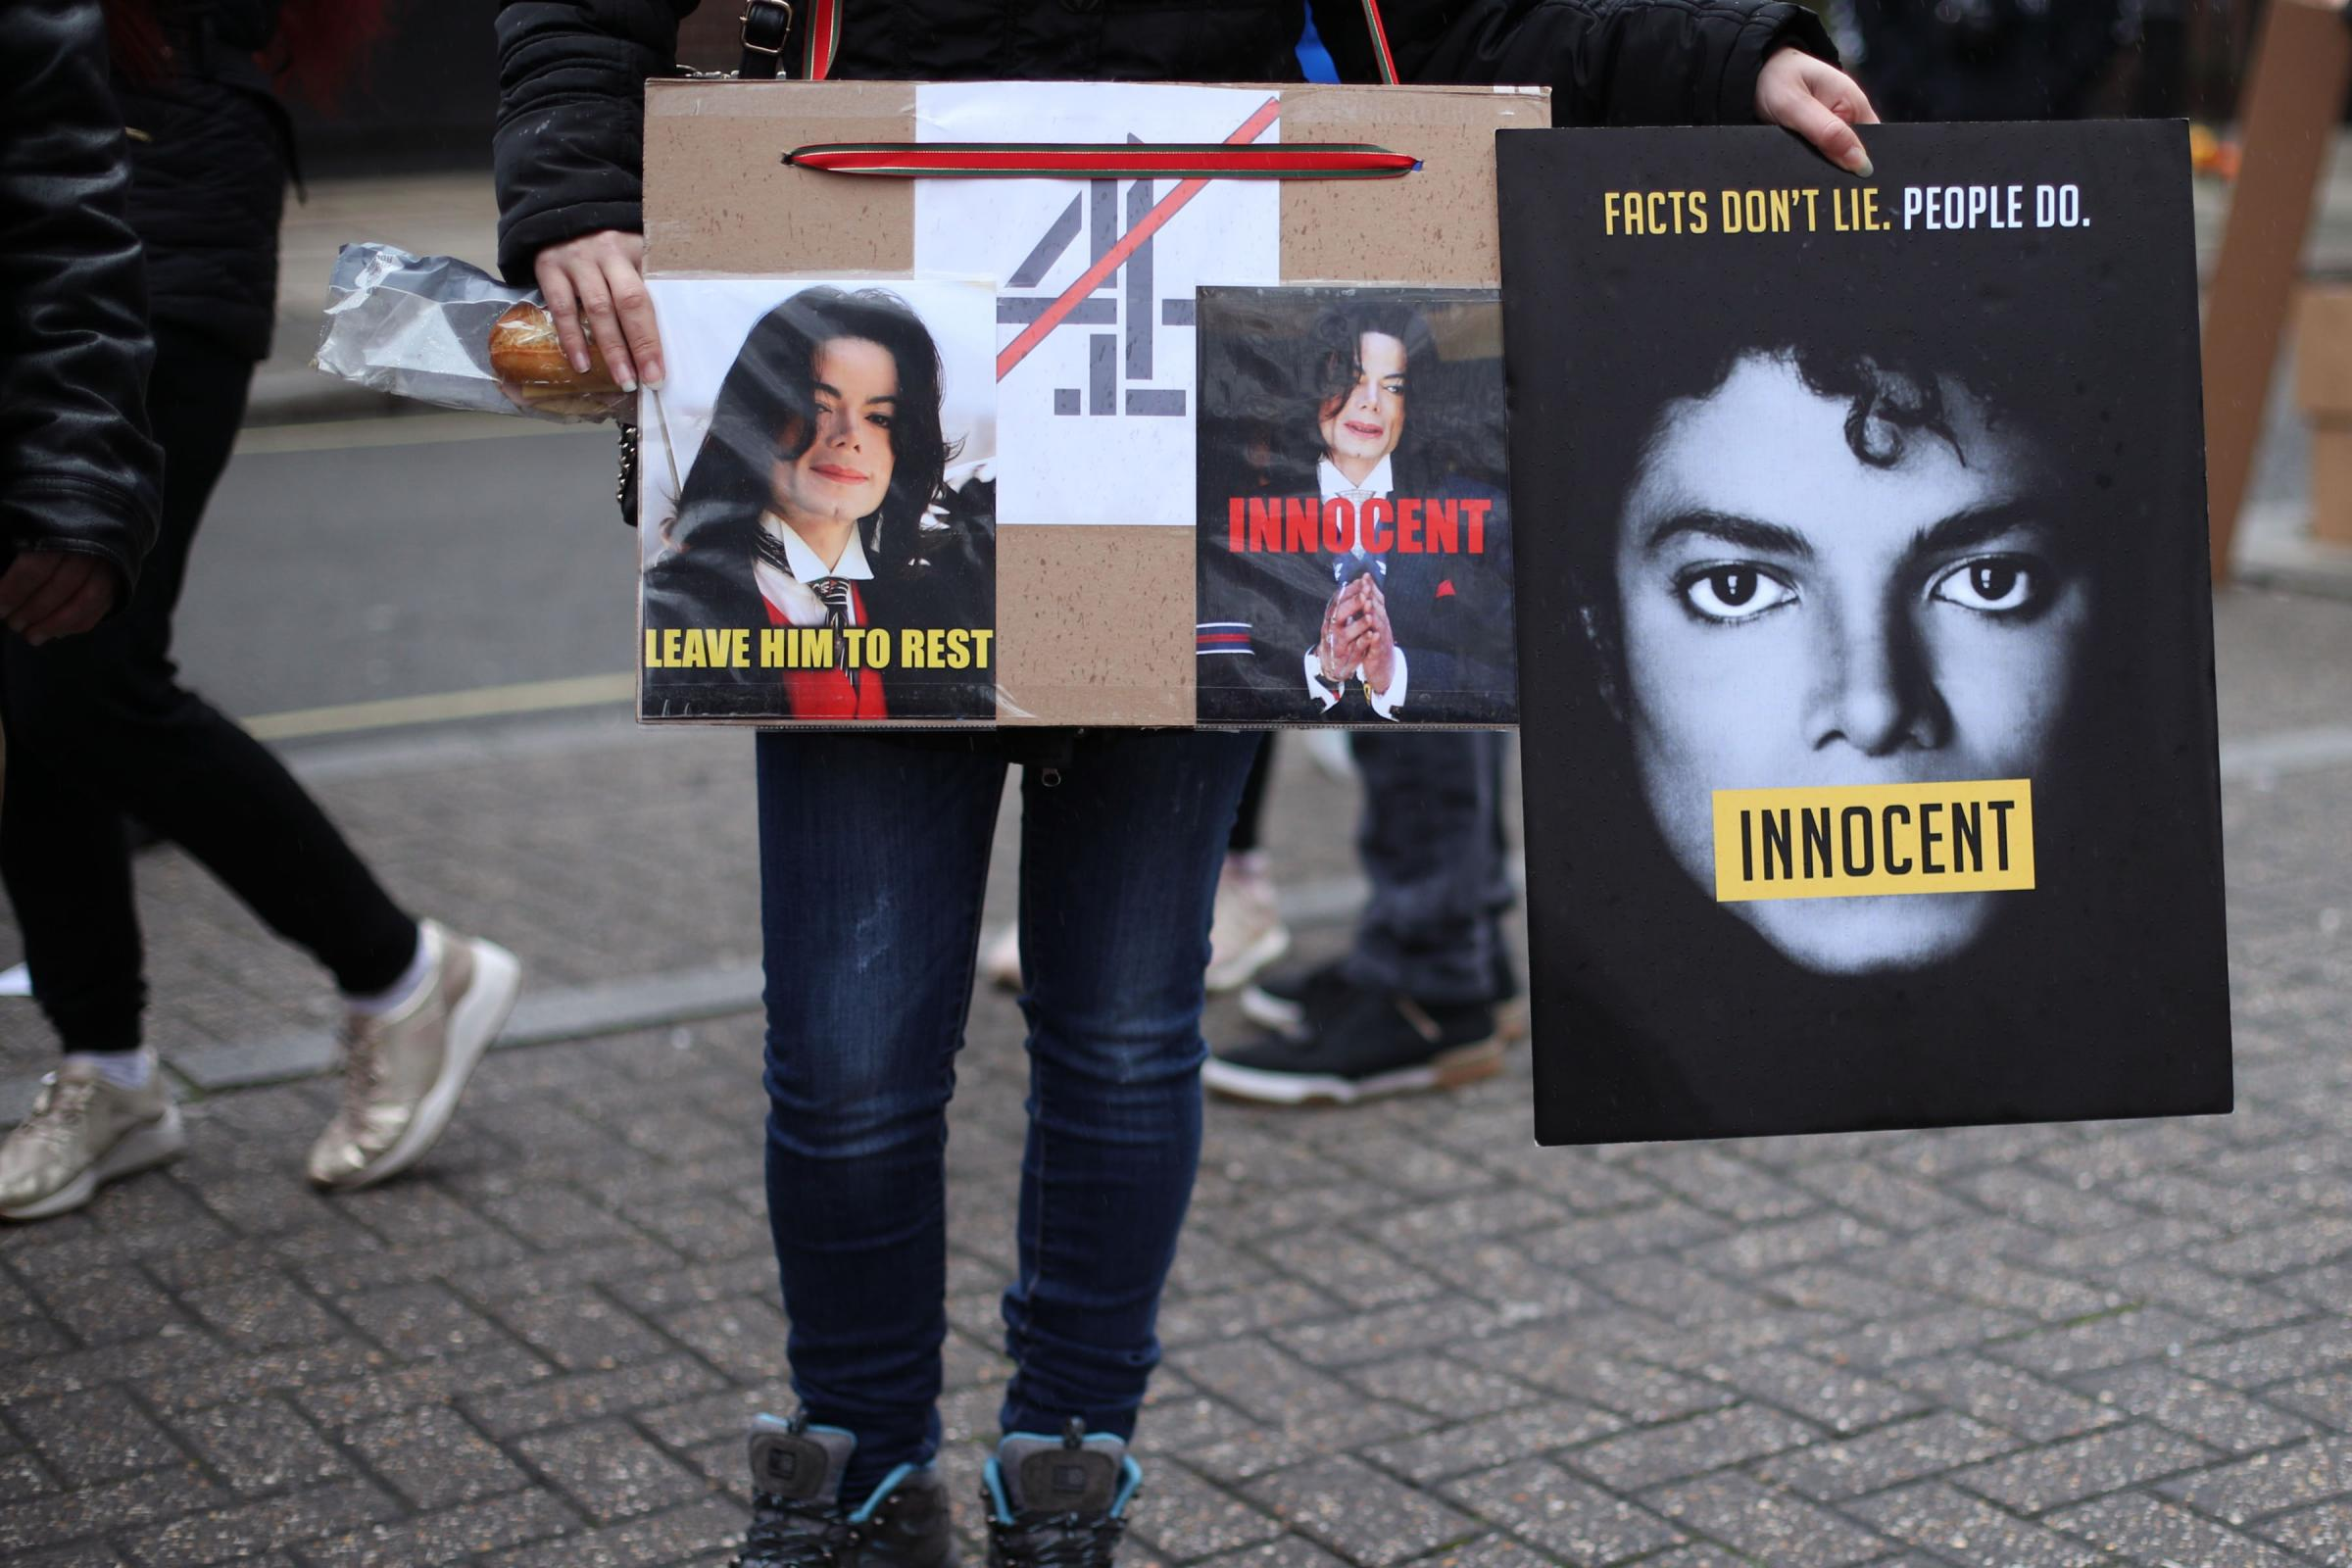 Michael Jackson fans protest outside Channel 4's London HQ ahead of the screening of the documentary Leaving Neverland